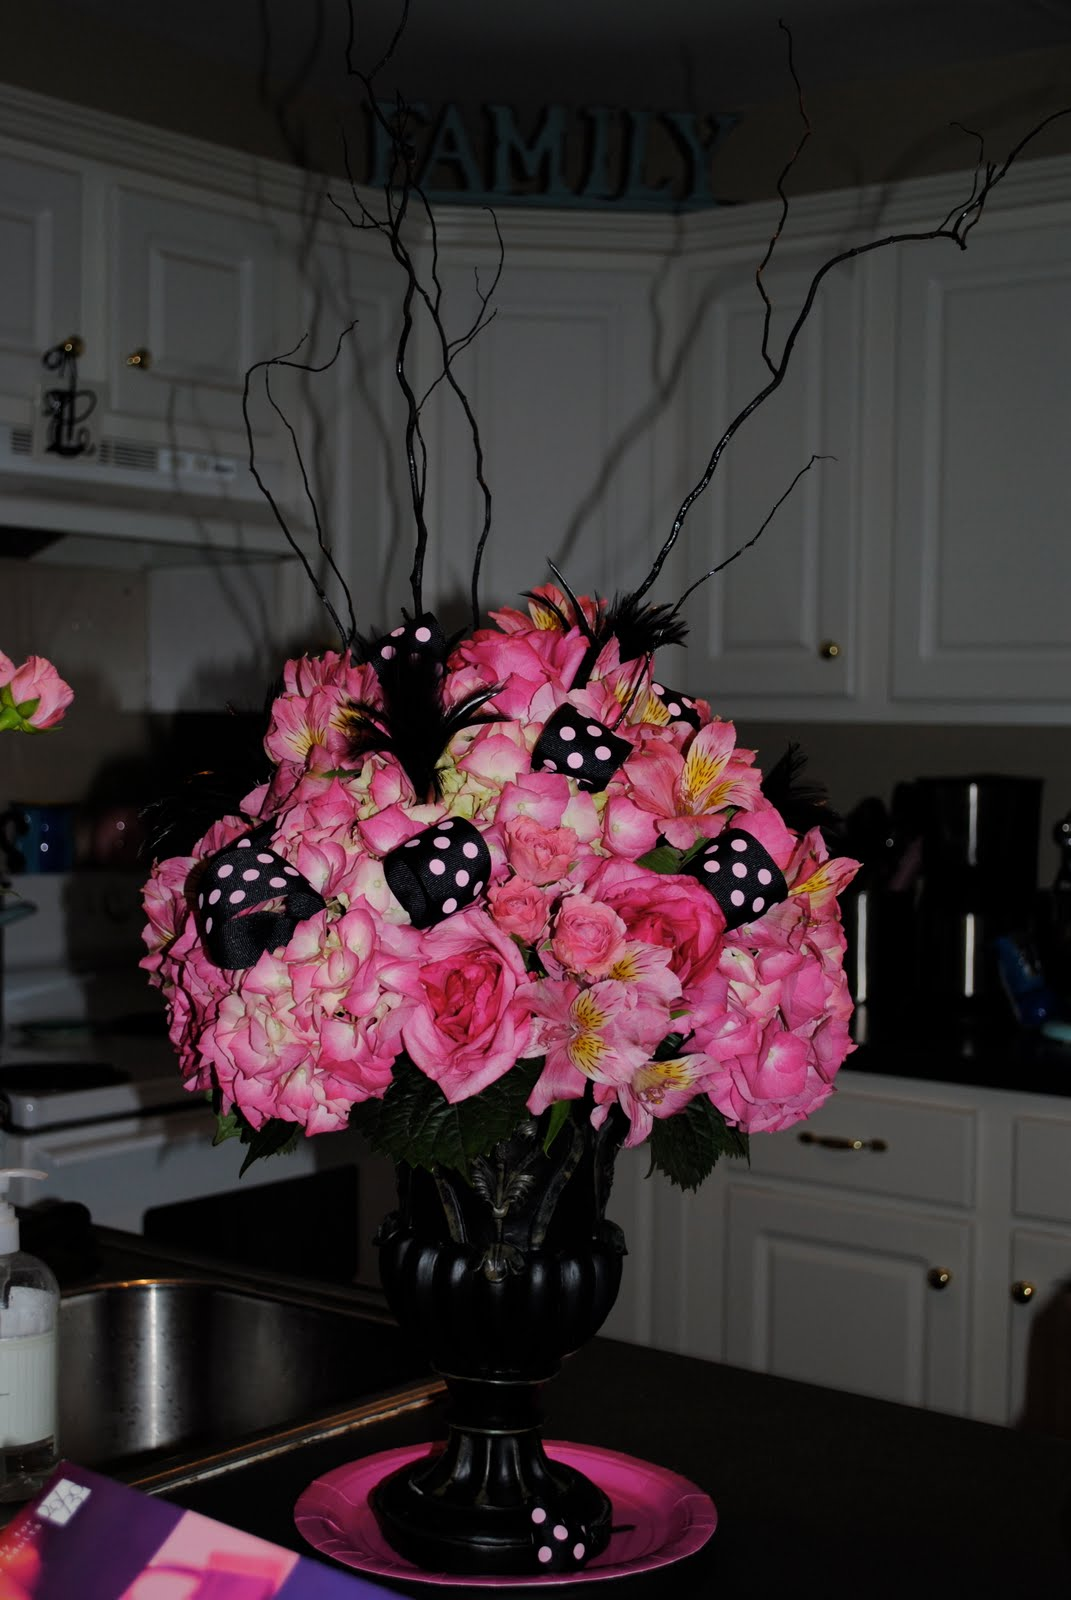 Aunt Elizabeth Was Throwing A Shower For Her Sister Expecting In Few Months And Asked Chad To Do The Flower Arrangement